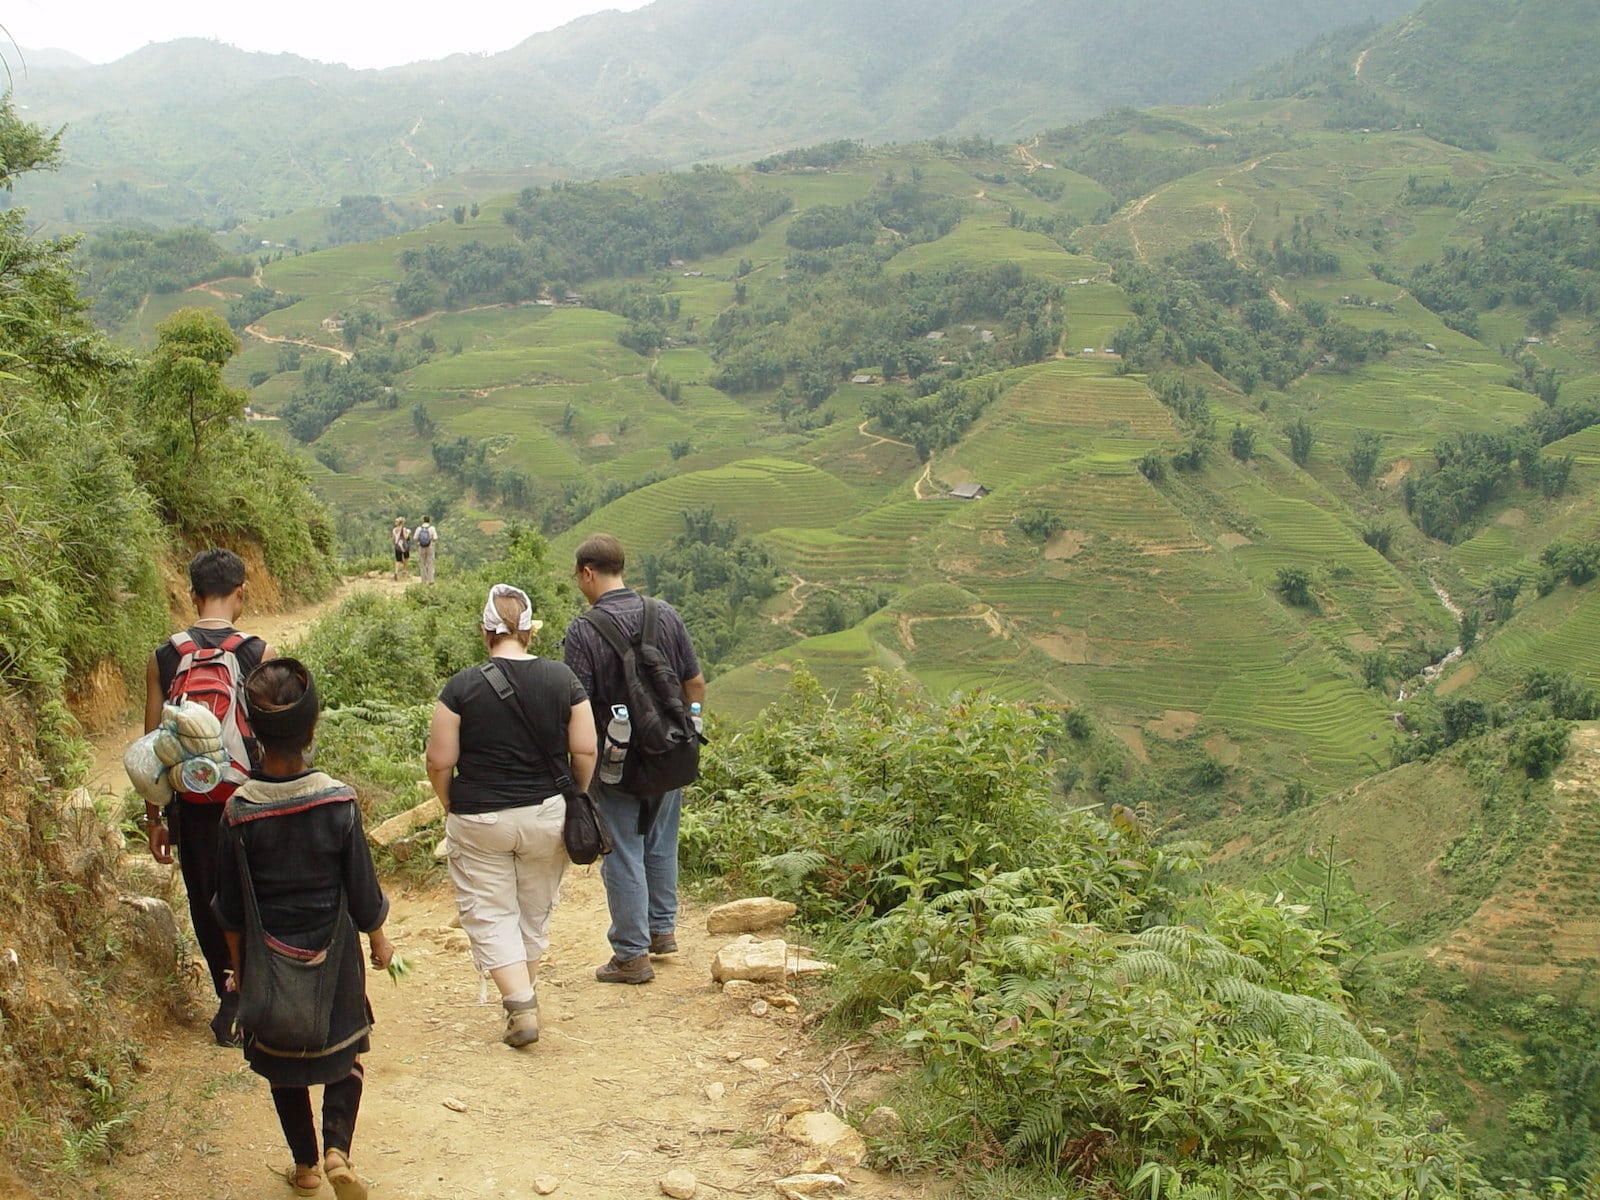 Hiking in the valley trail, Sapa